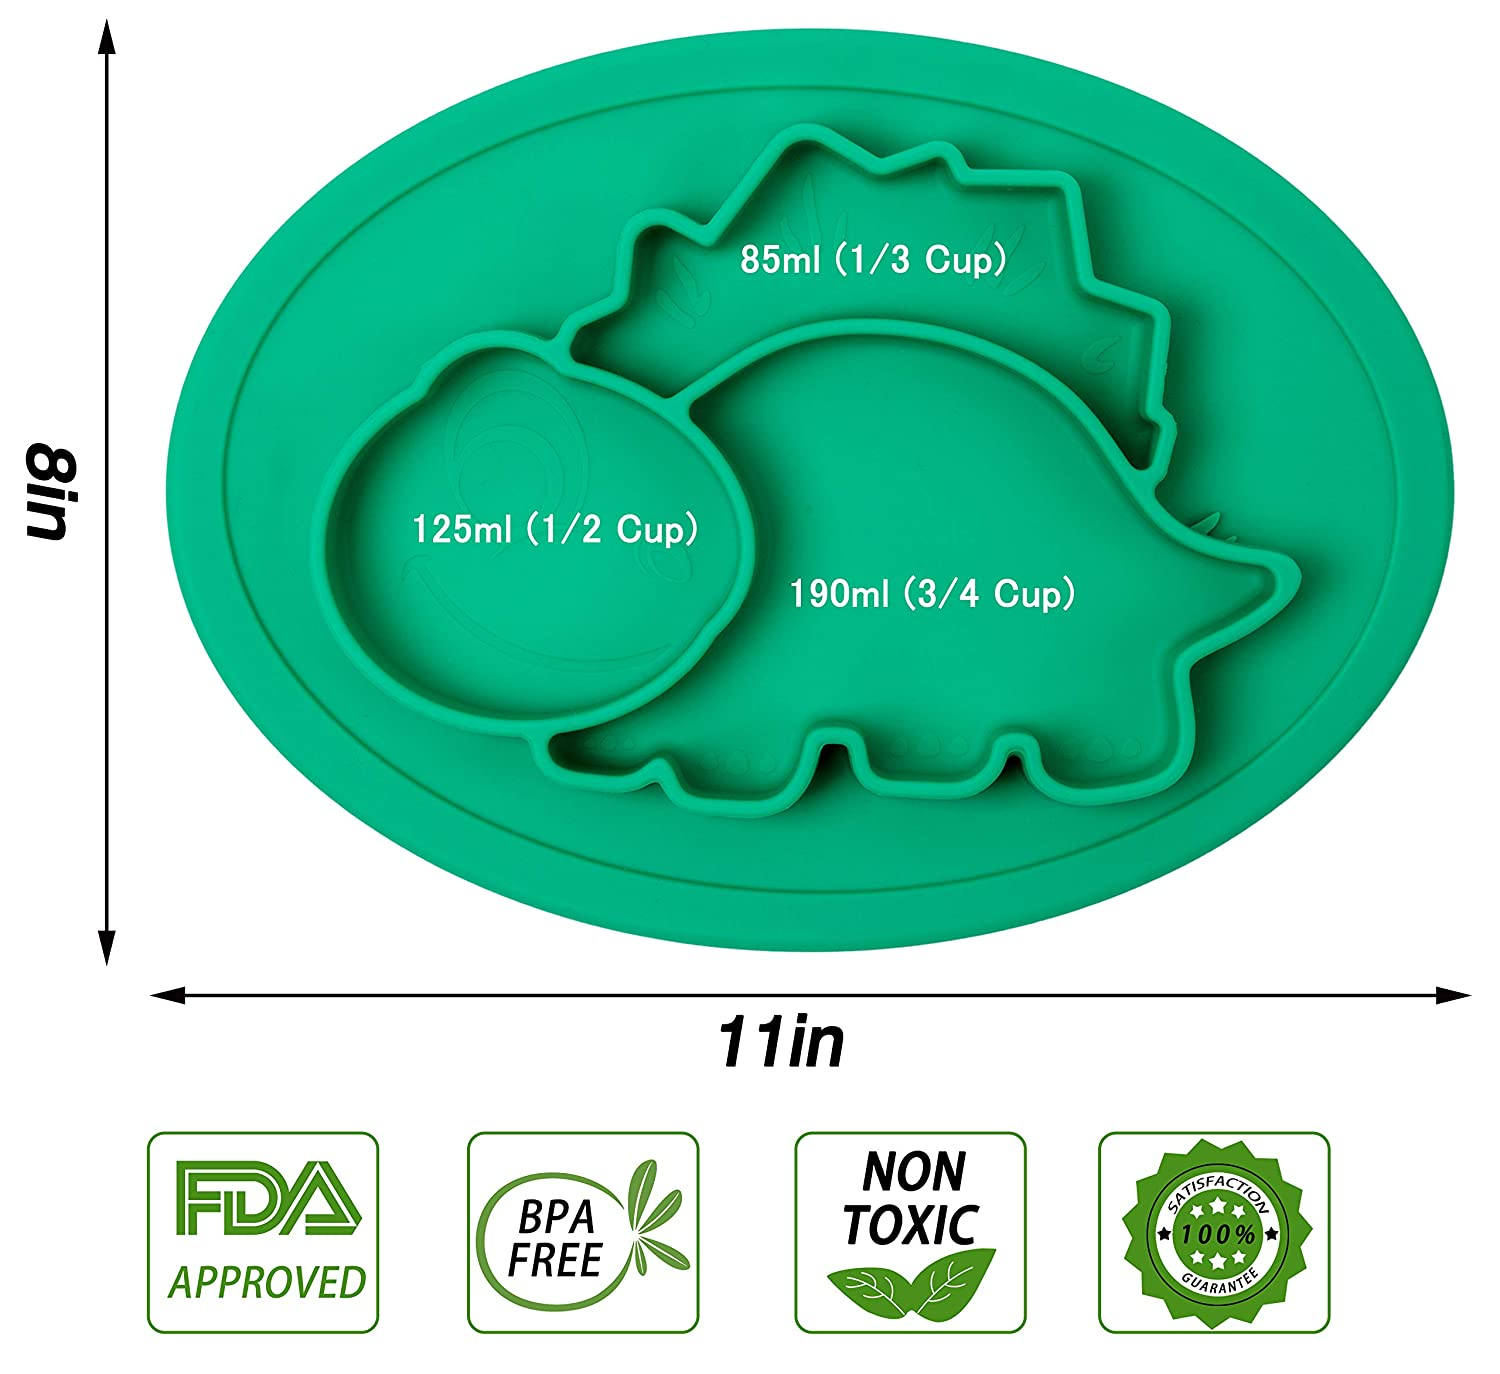 BPA-Free FDA Approved Strong Suction Plates for Toddlers Qshare Toddler Plates One-Piece Baby Plate for Babies Toddlers and Kids Dishwasher and Microwave Safe Silicone Placemat 28 * 20 * 2.5cm